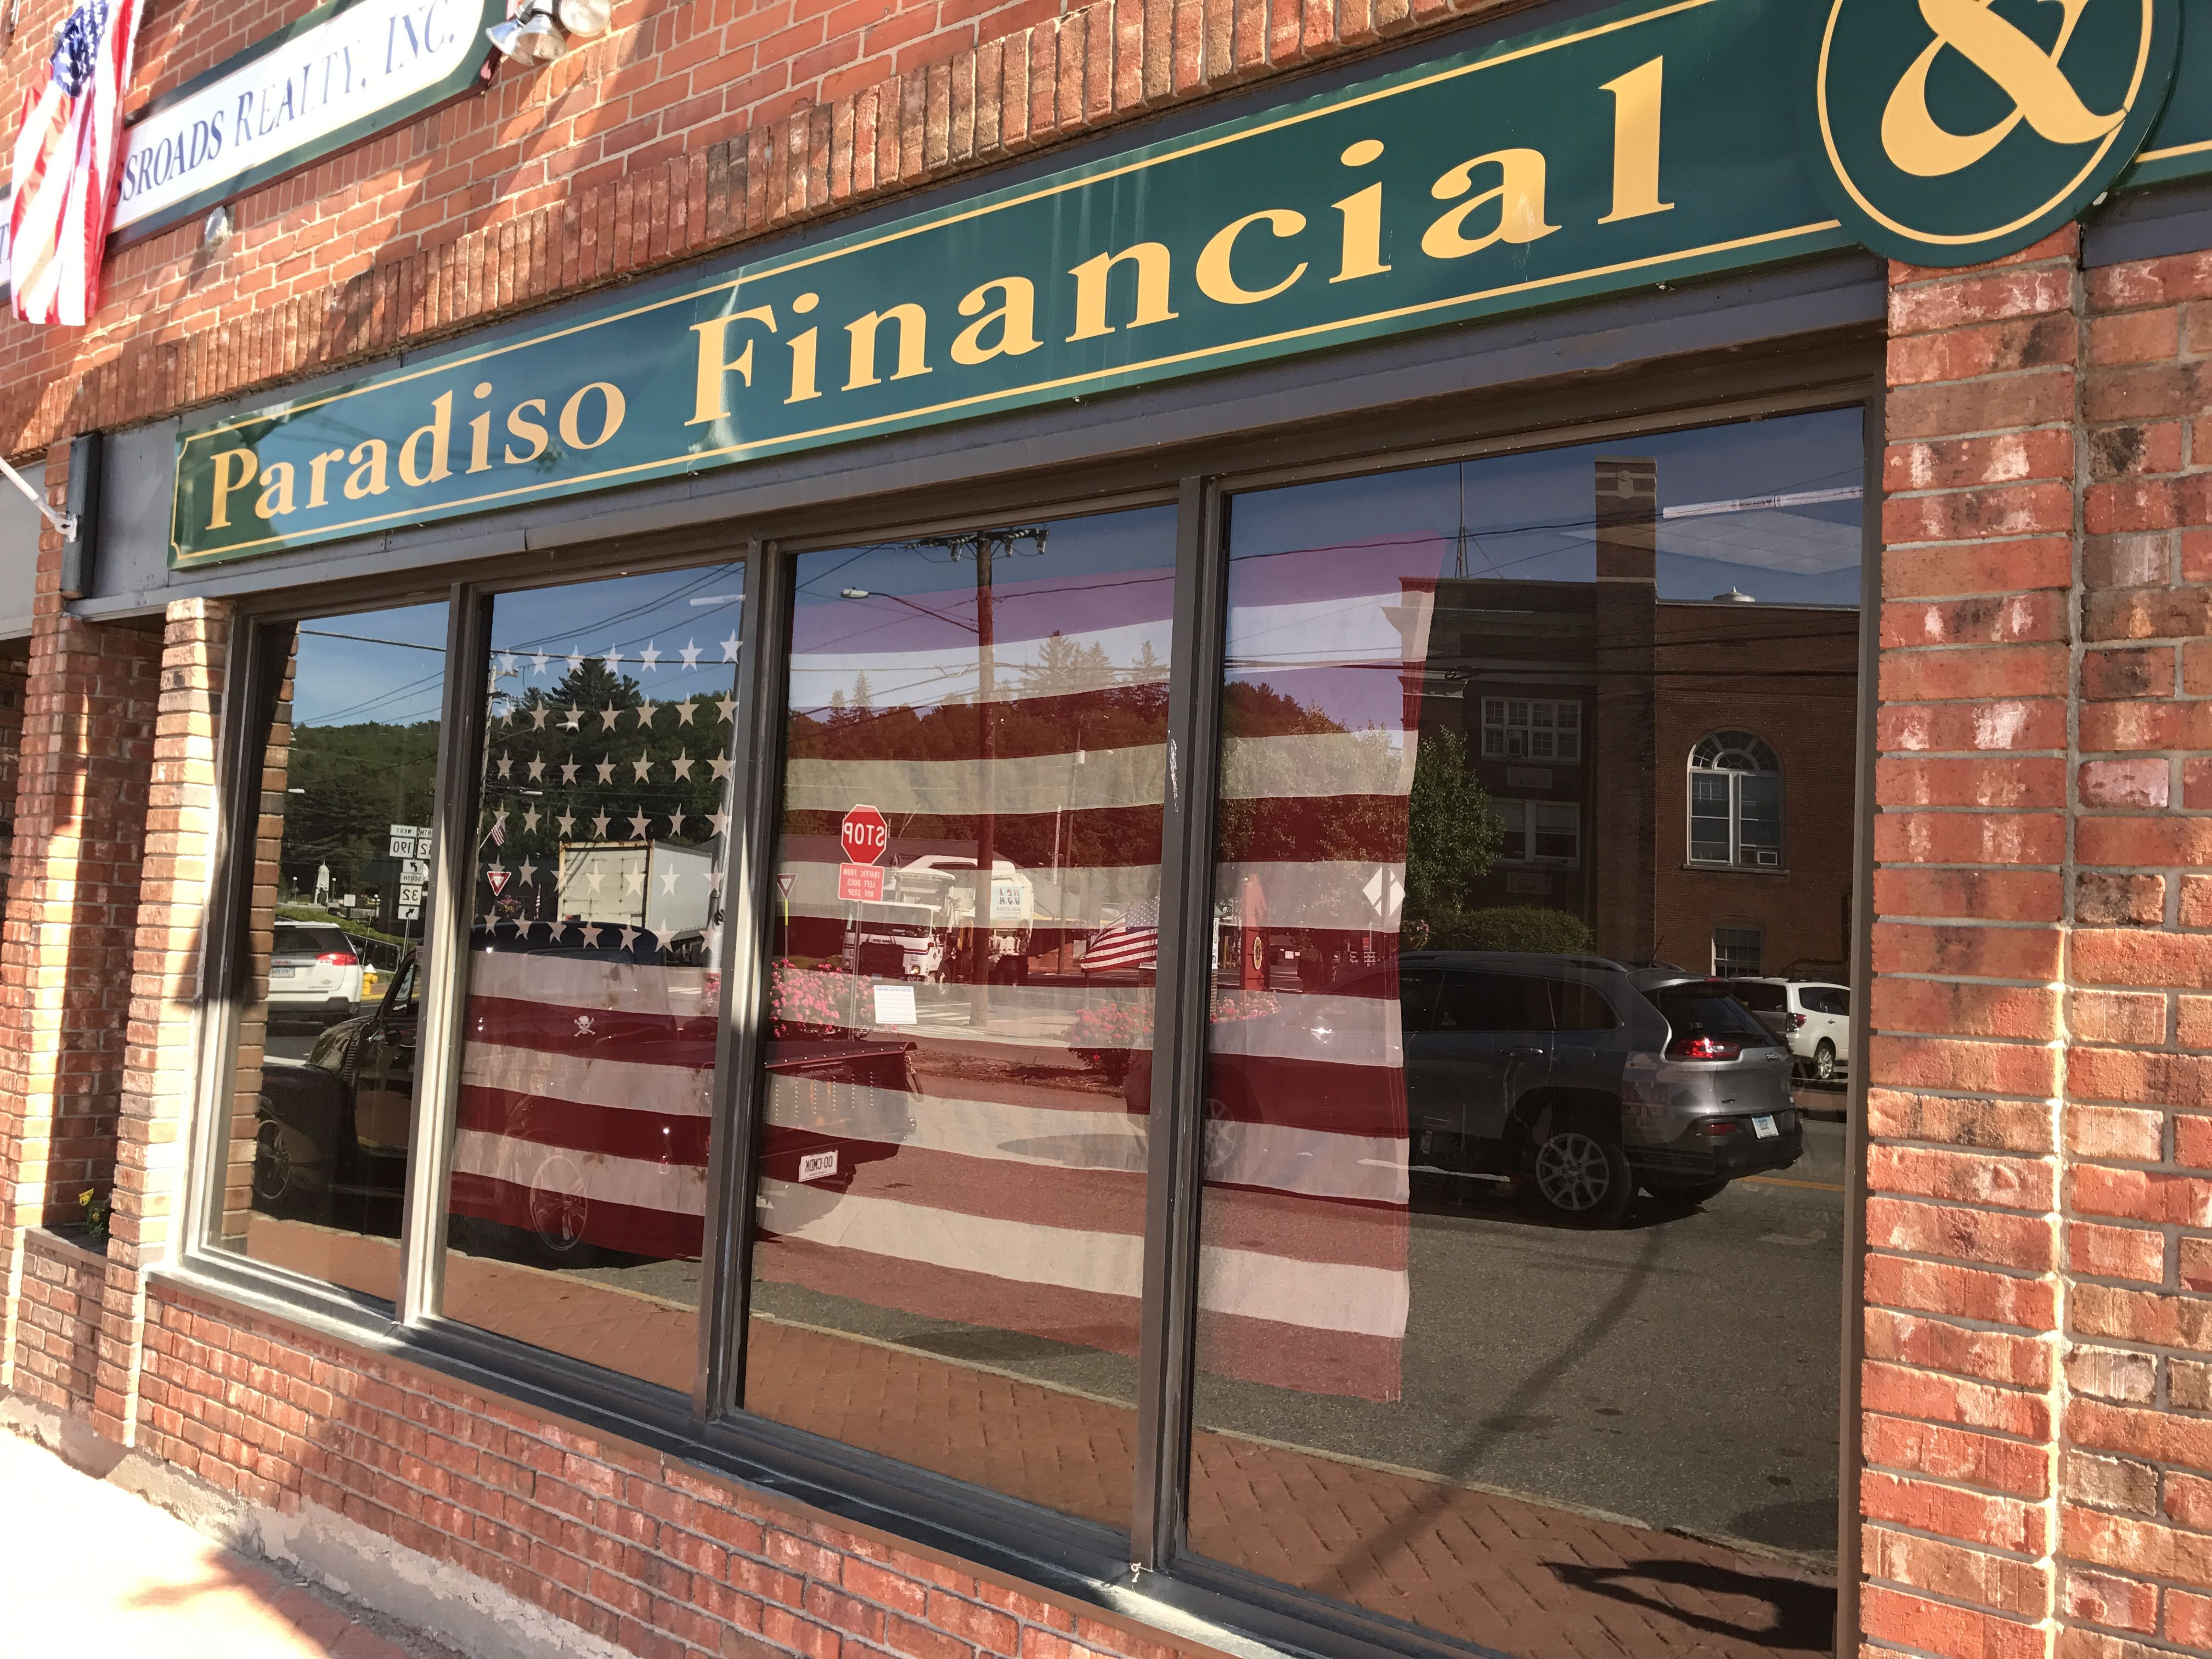 Every FlagDay we hang this huge flag in our window!